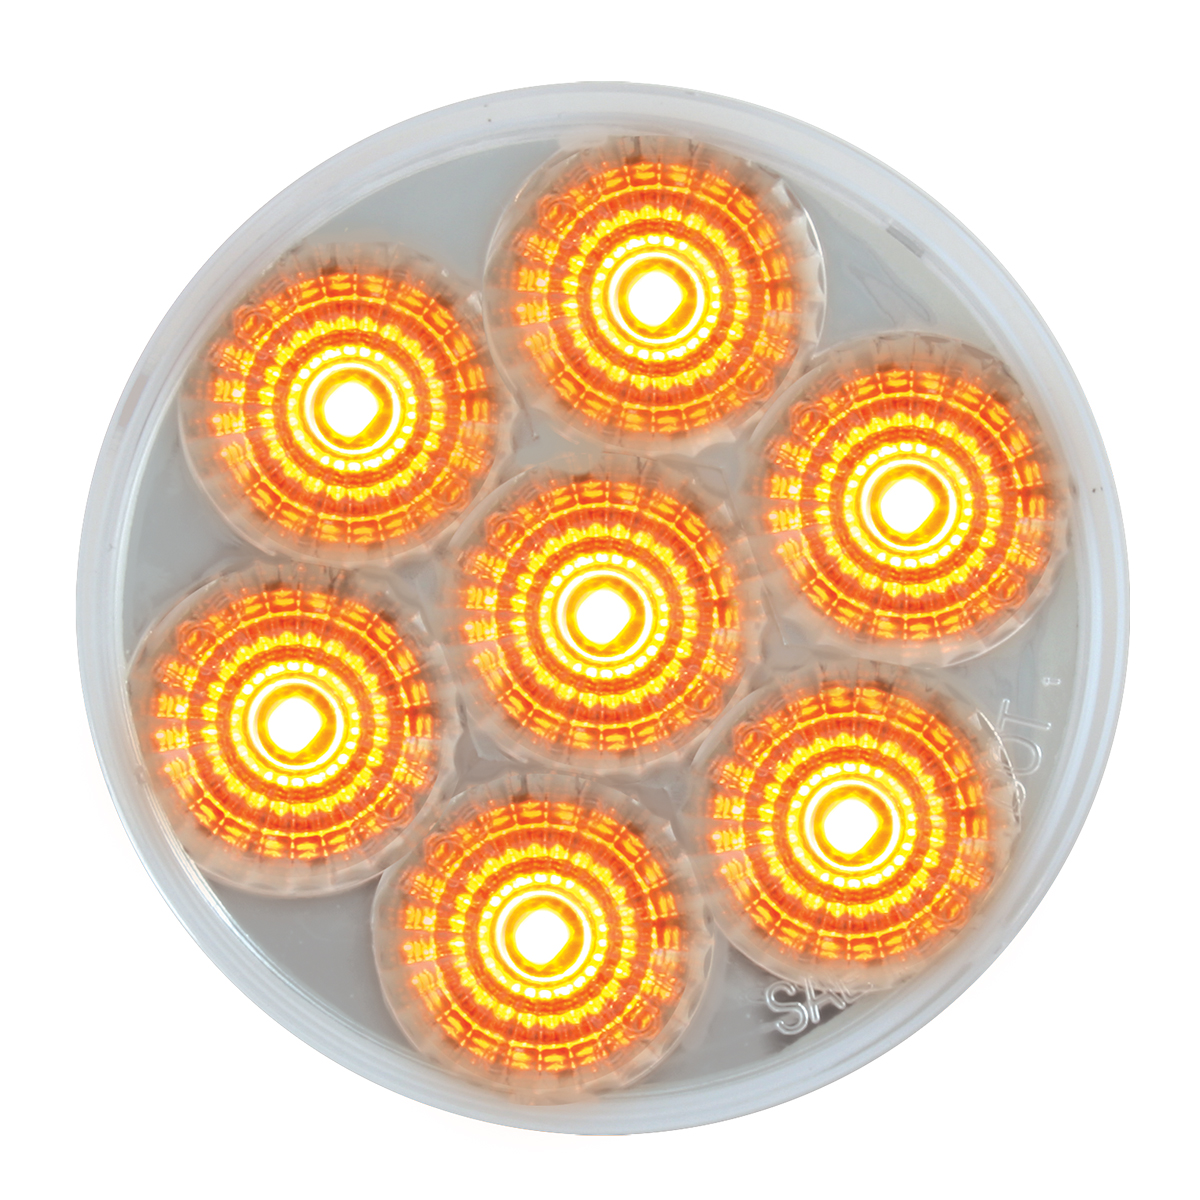 "76666 2-1/2"" Dual Function Spyder LED Light"